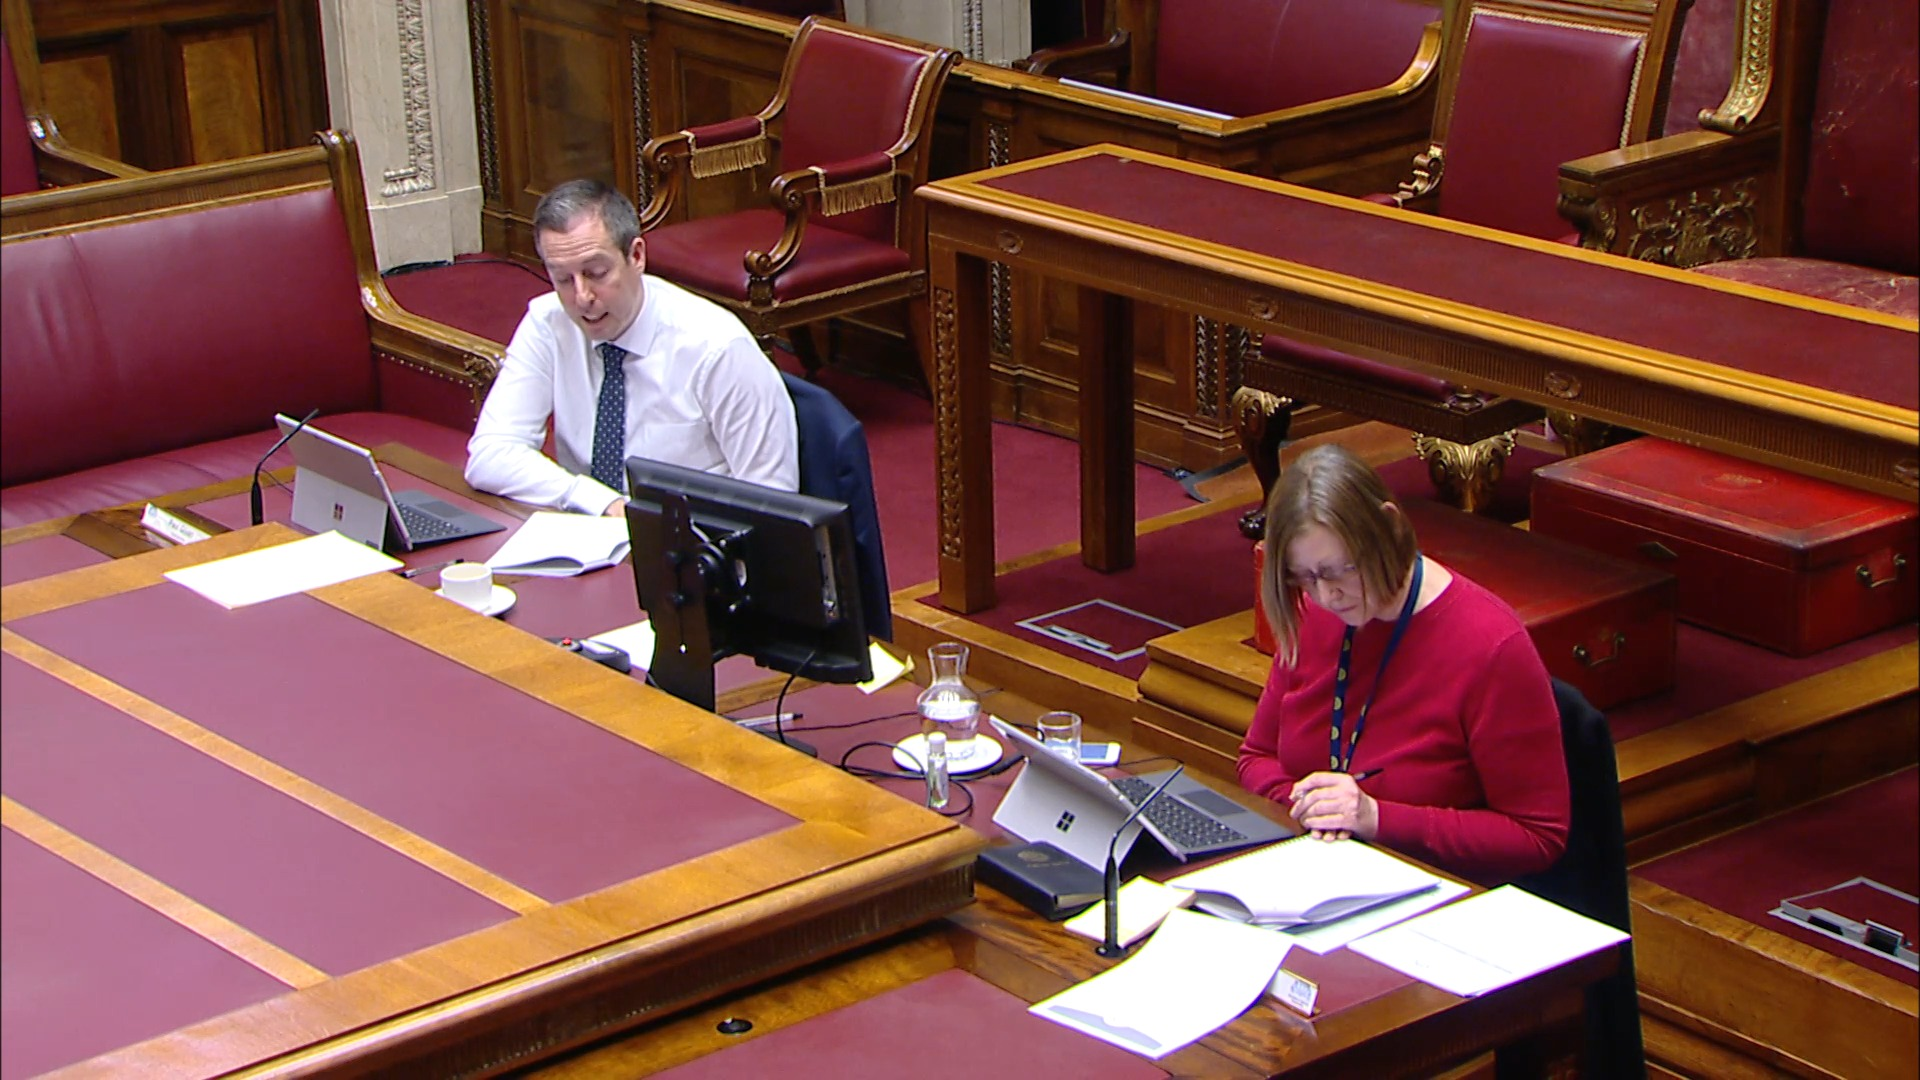 Justice Committee Meeting - Thursday 4th March 2021